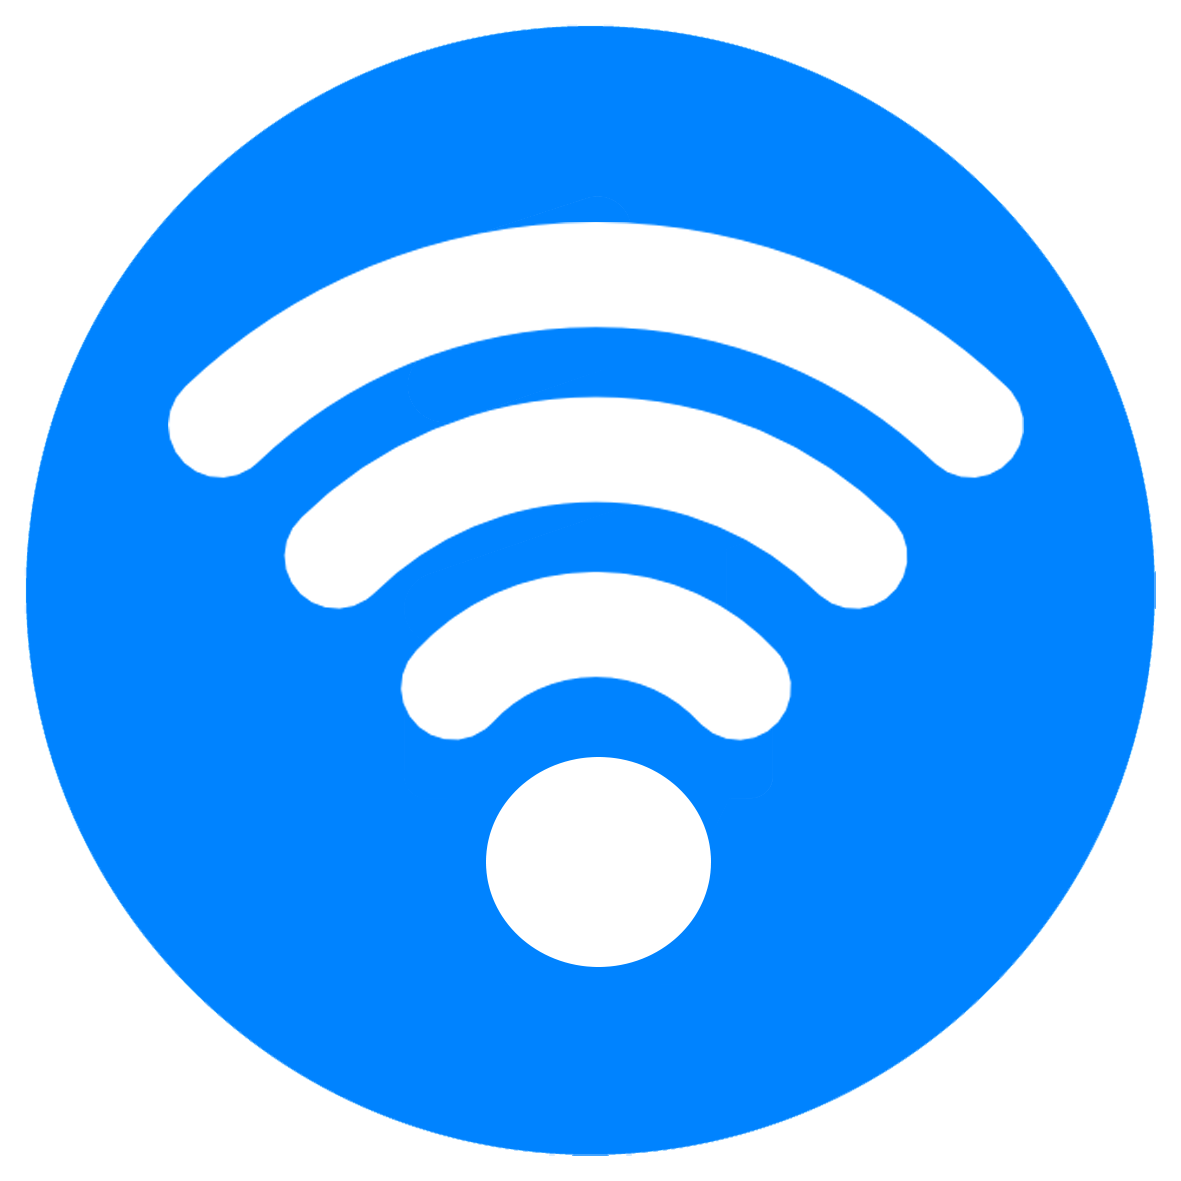 Wifi button png. Electrosensitivity and the question